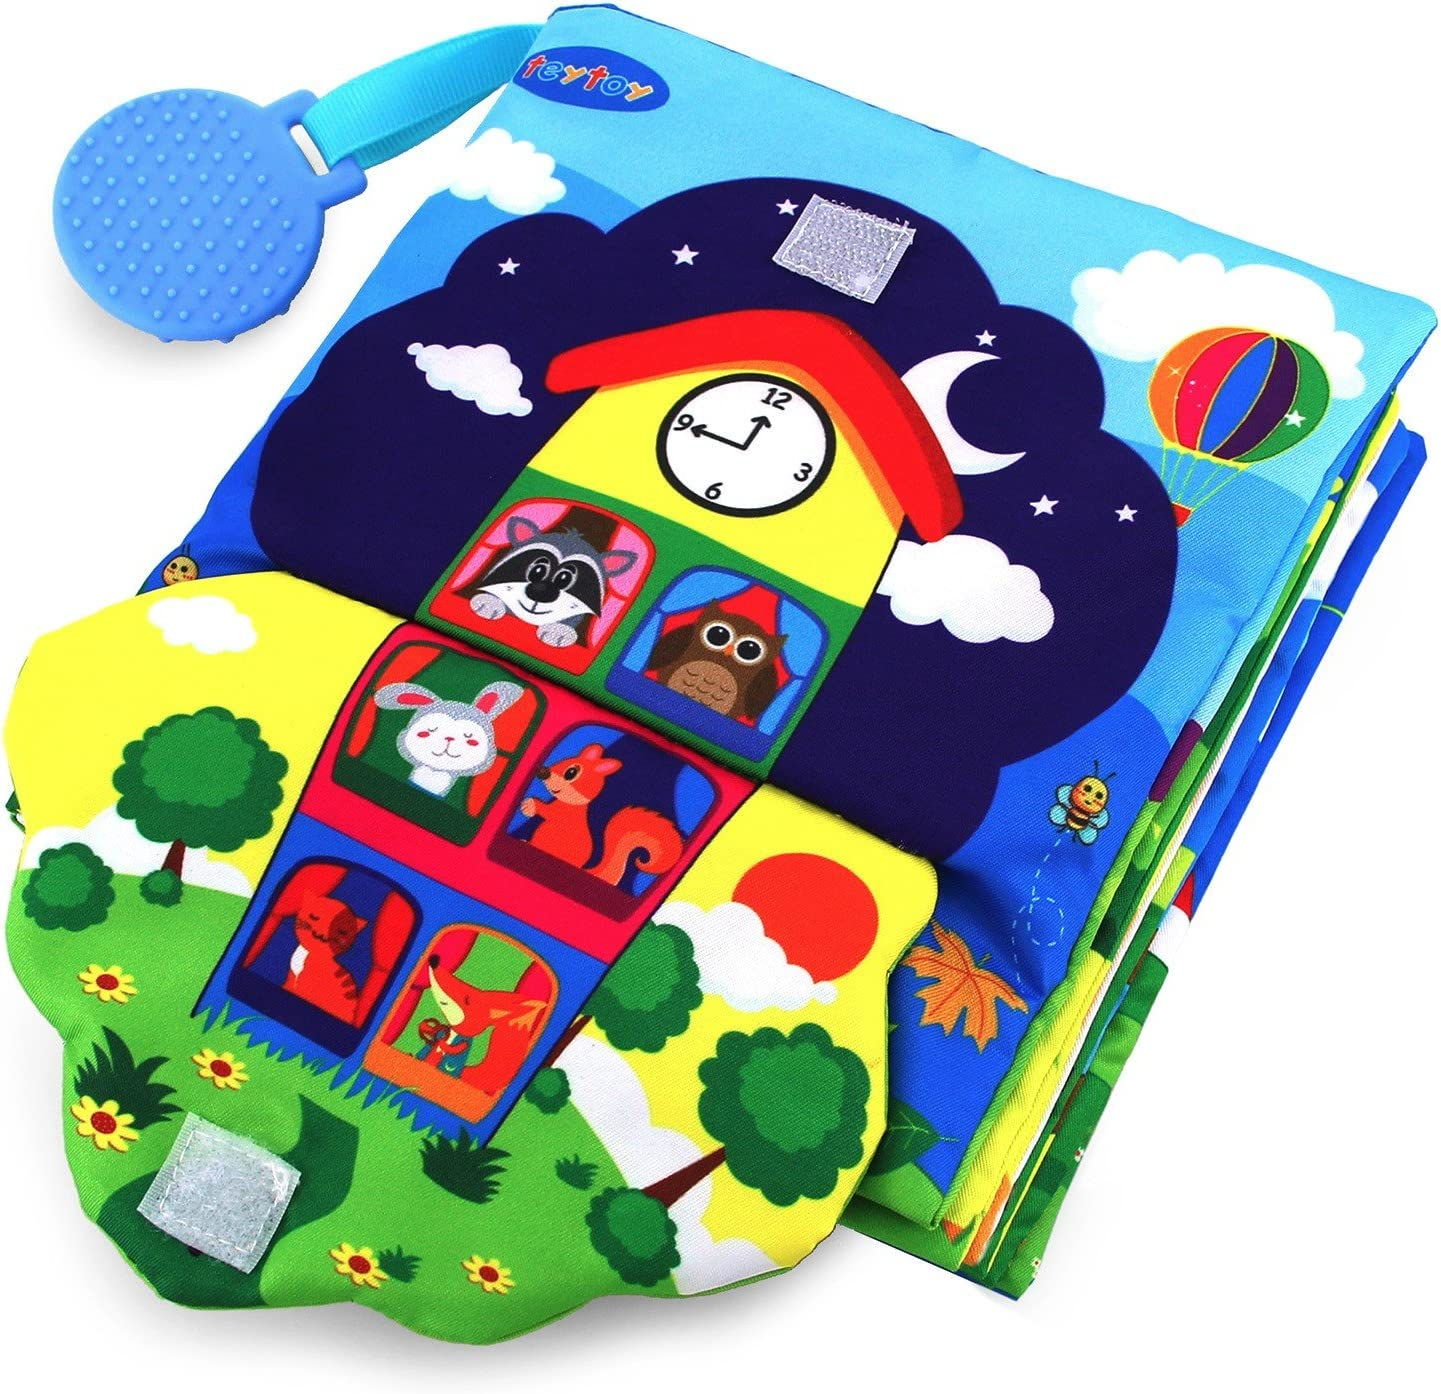 Kids Soft Cloth Book Learning to Dress Zip Button Tie Teaching Tool Colorful